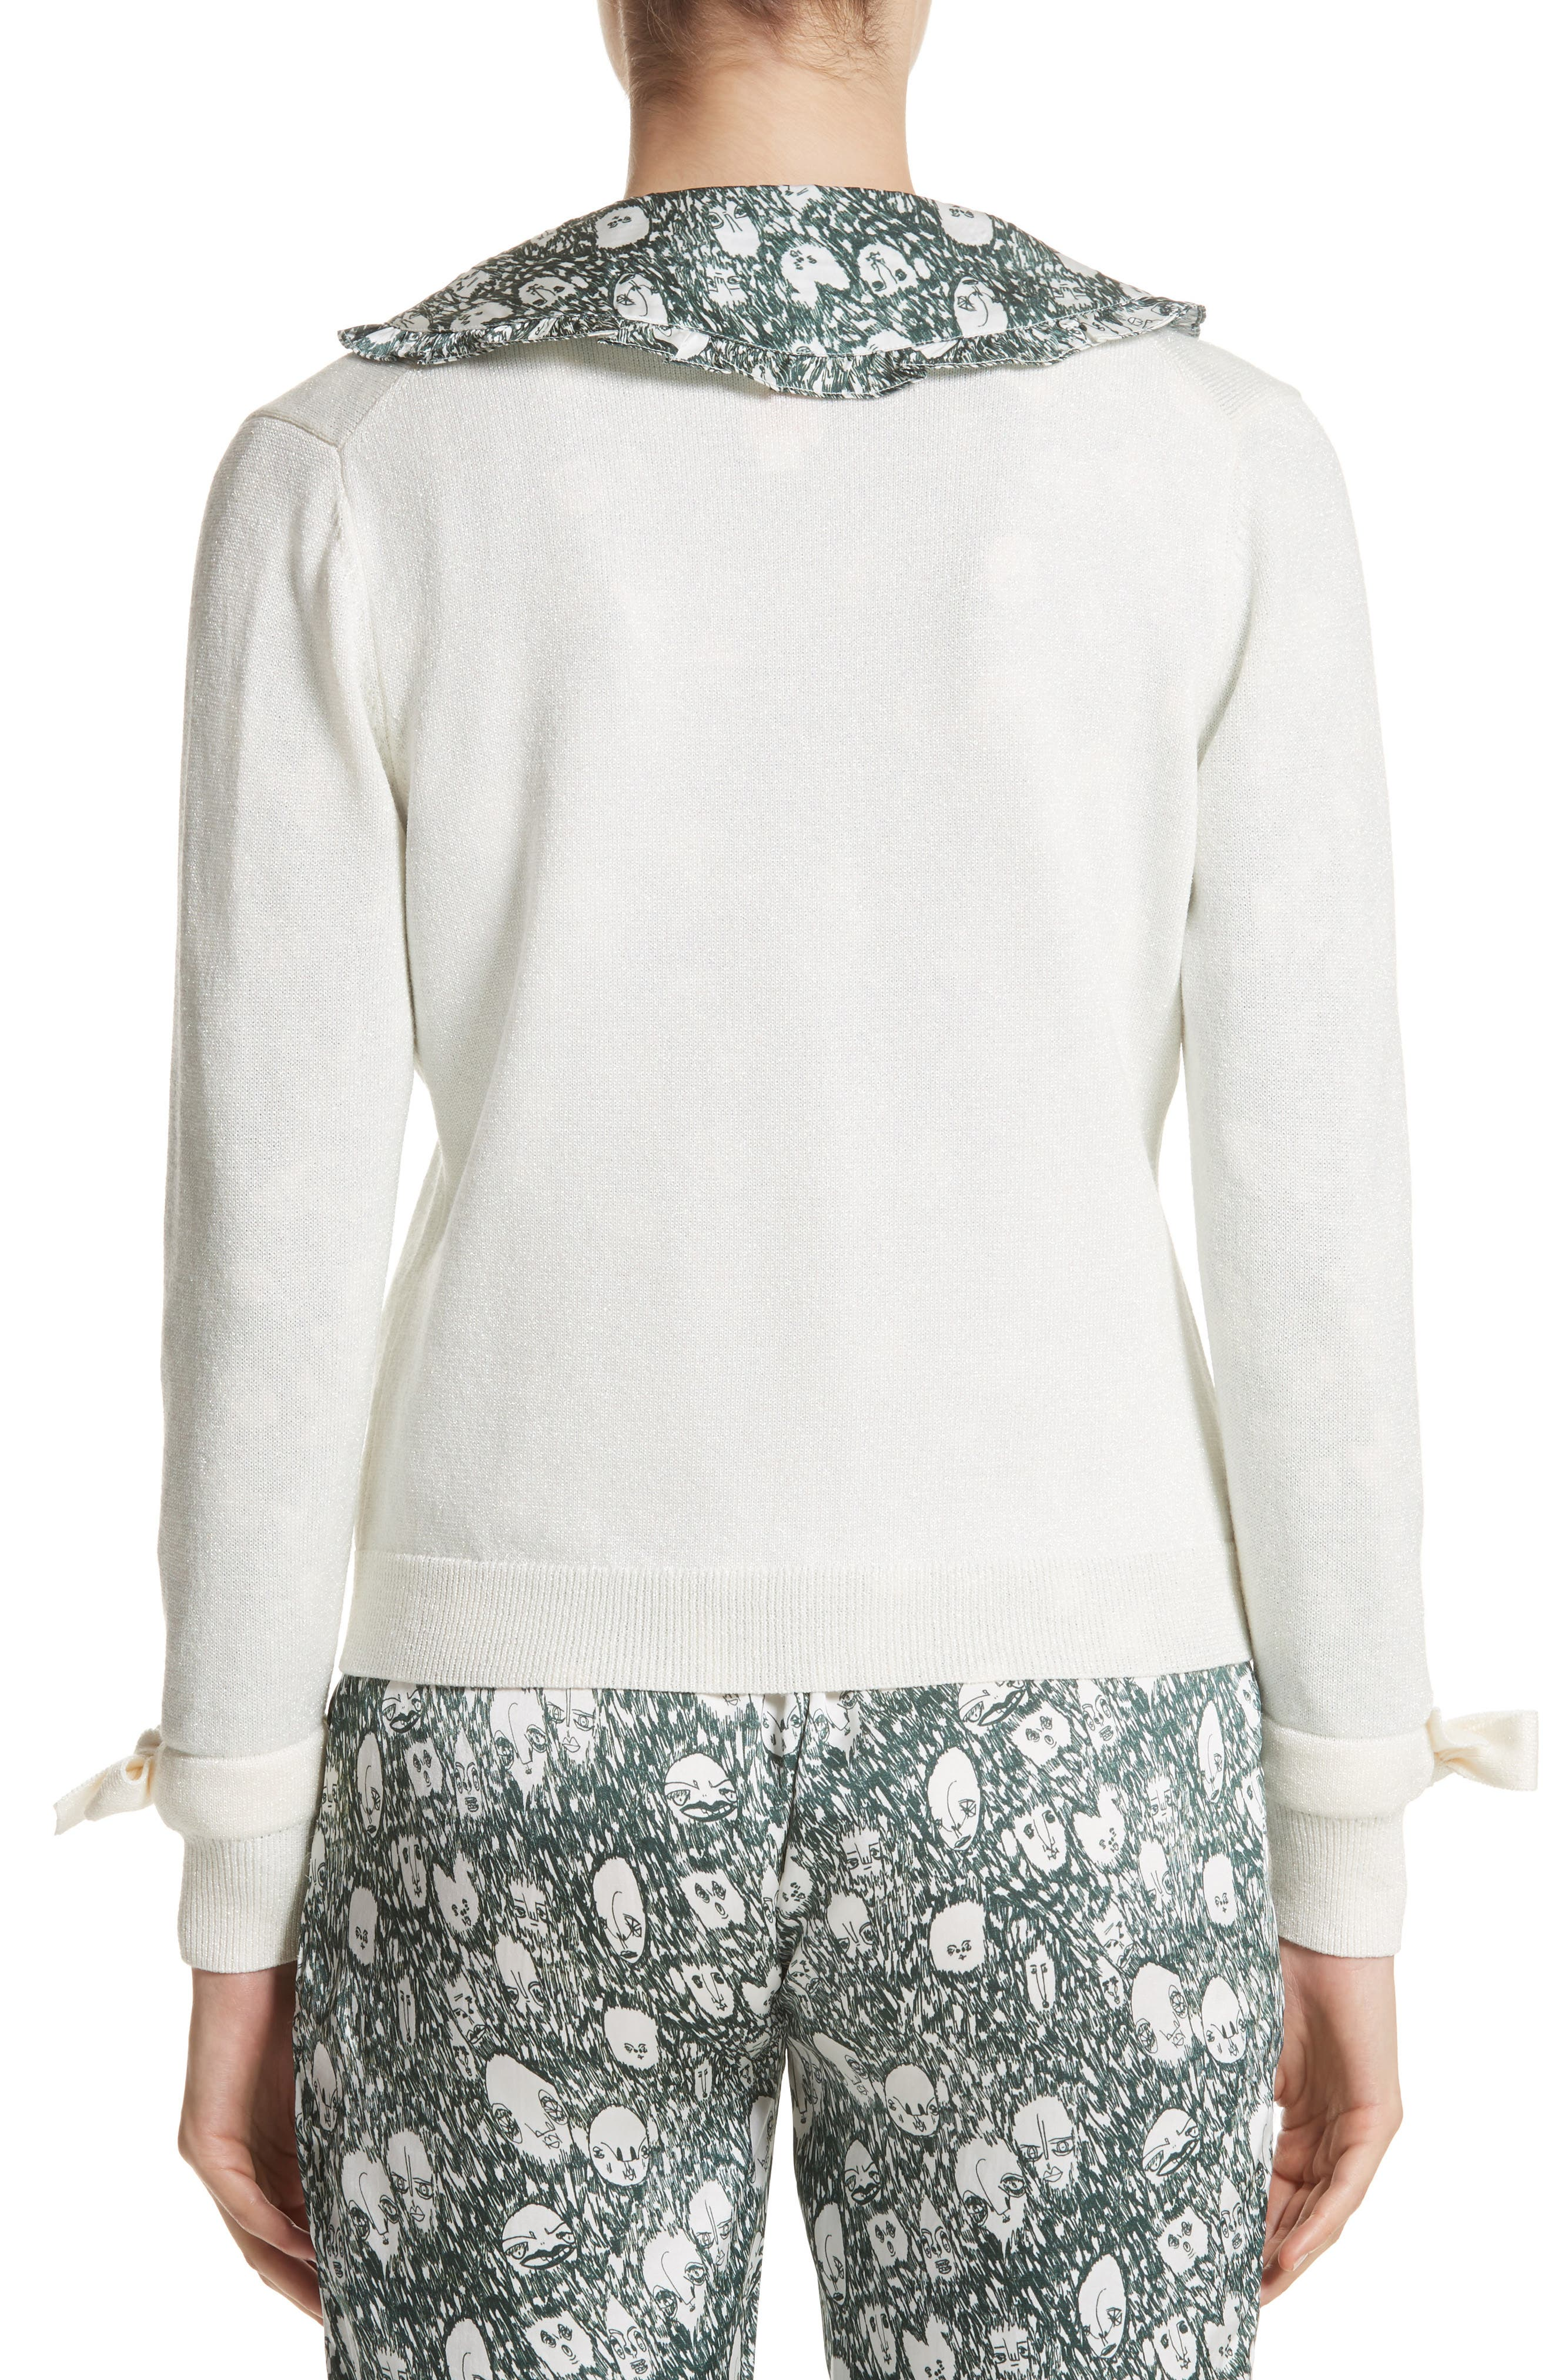 Lorna Embellished Bow Cuff Cardigan,                             Alternate thumbnail 2, color,                             900